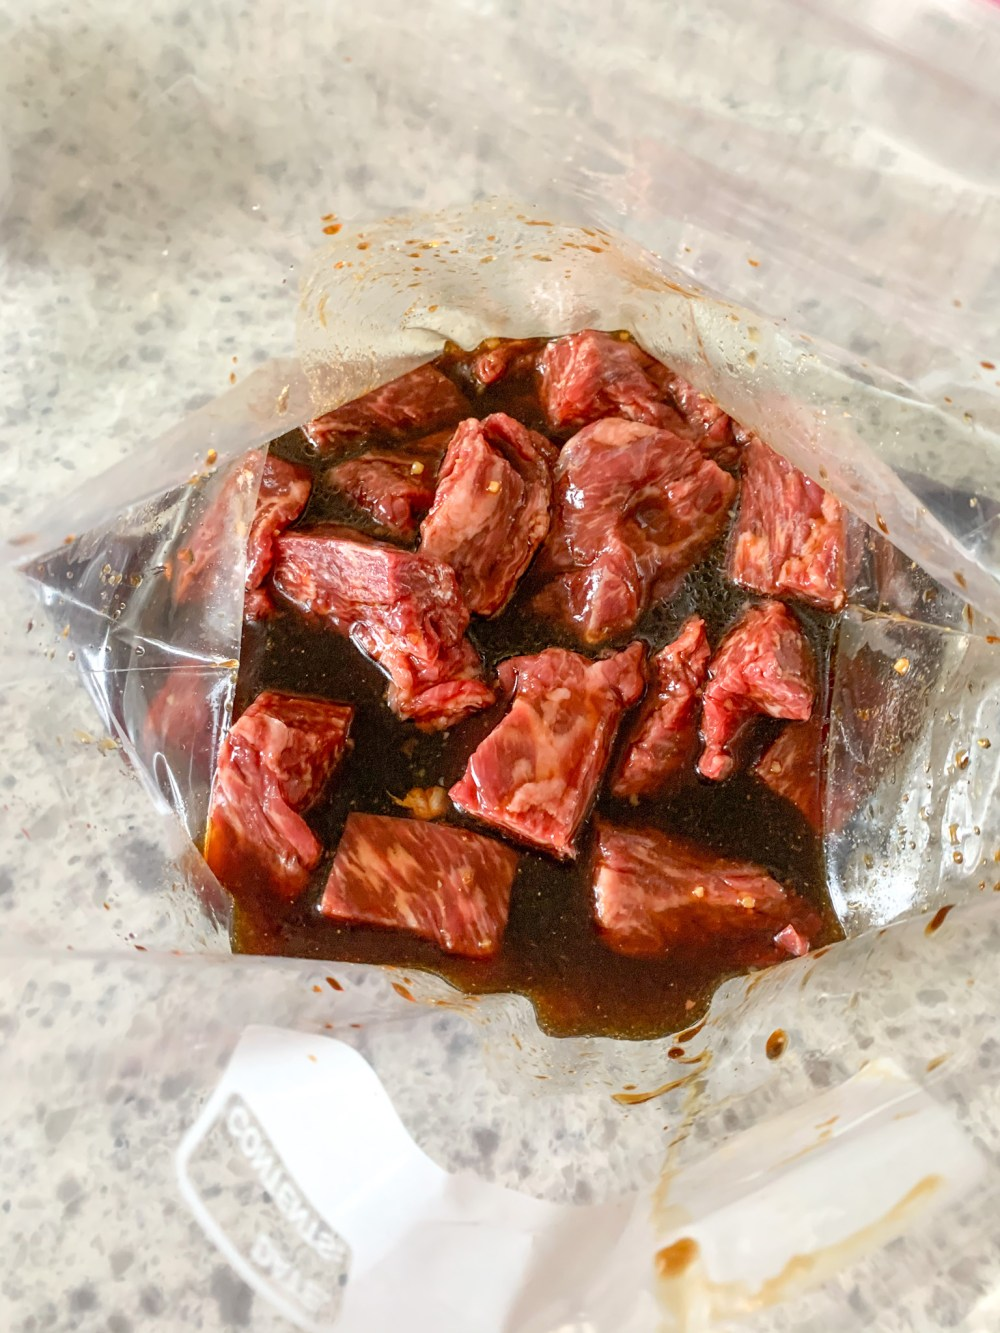 steak cubed in bag with teriyaki marinade